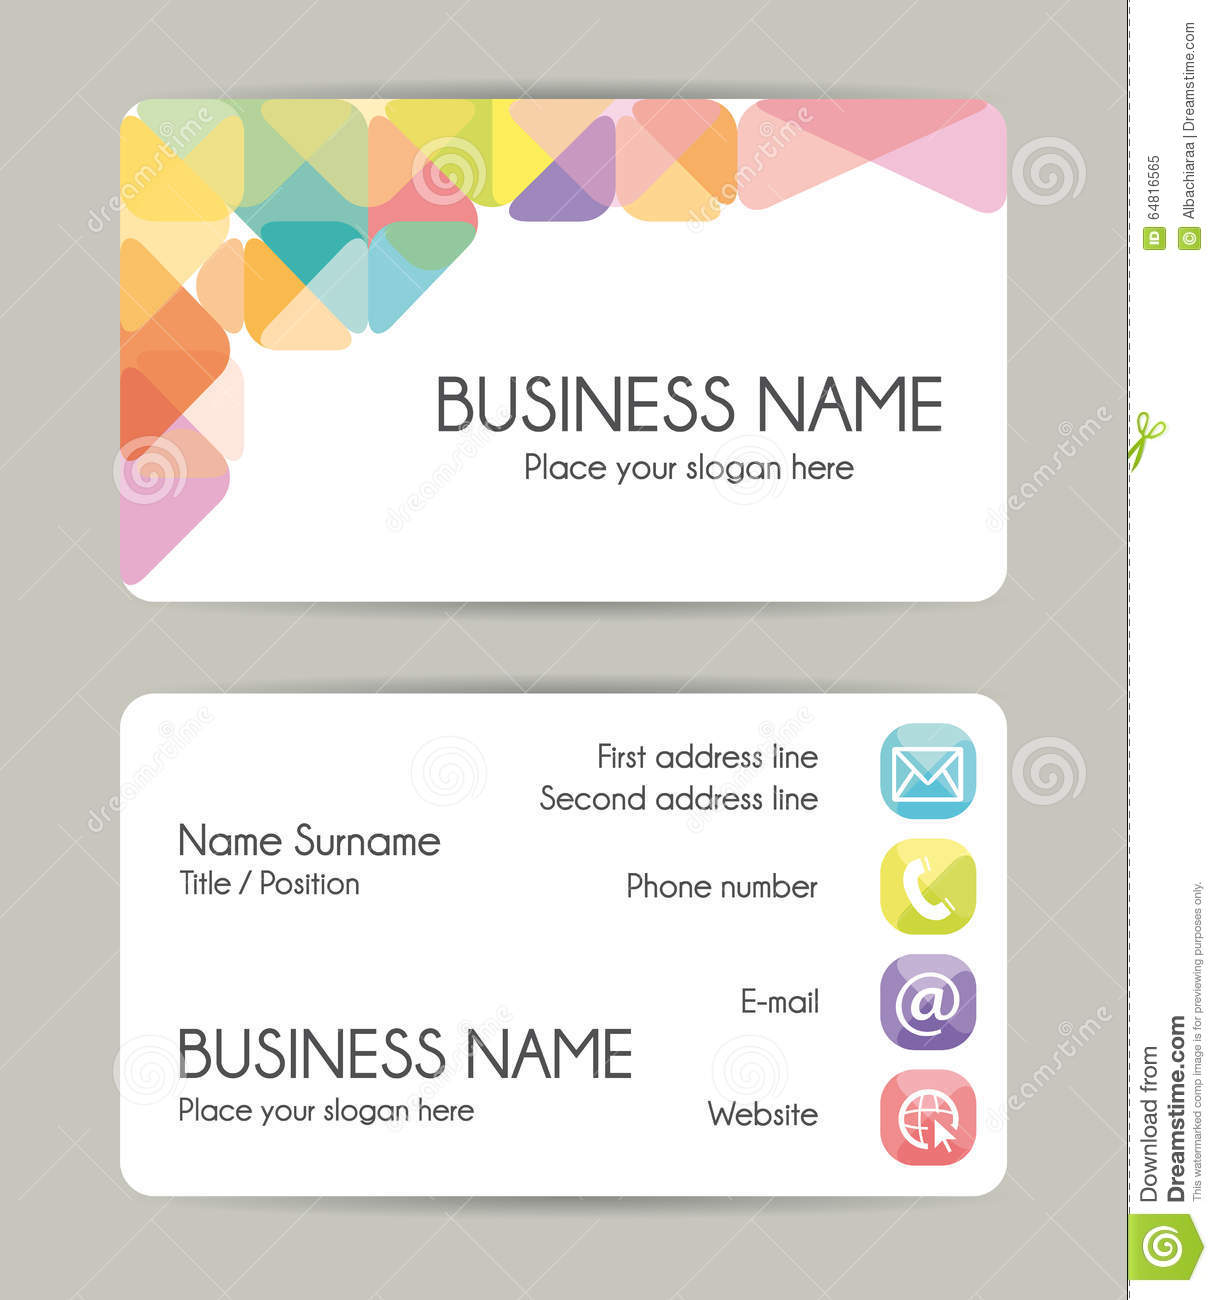 creative graphic business card design front and back illustration 64816565 megapixl - Back Of Business Card